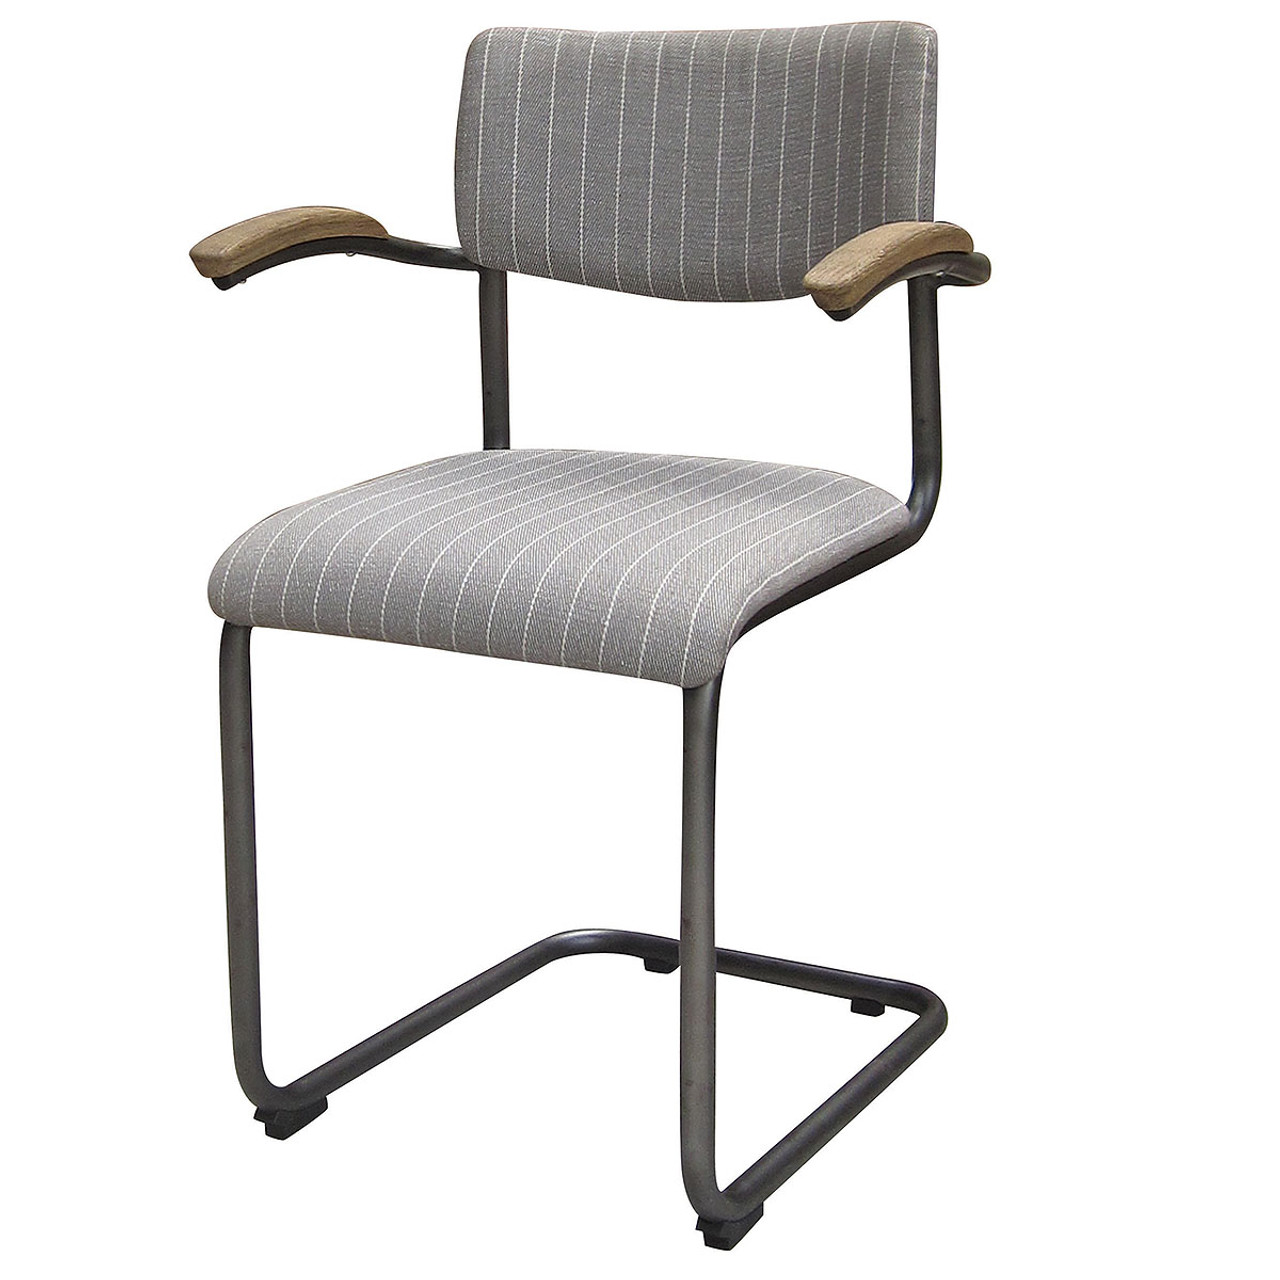 S Shaped Chair Airporter Dining Chair Grey